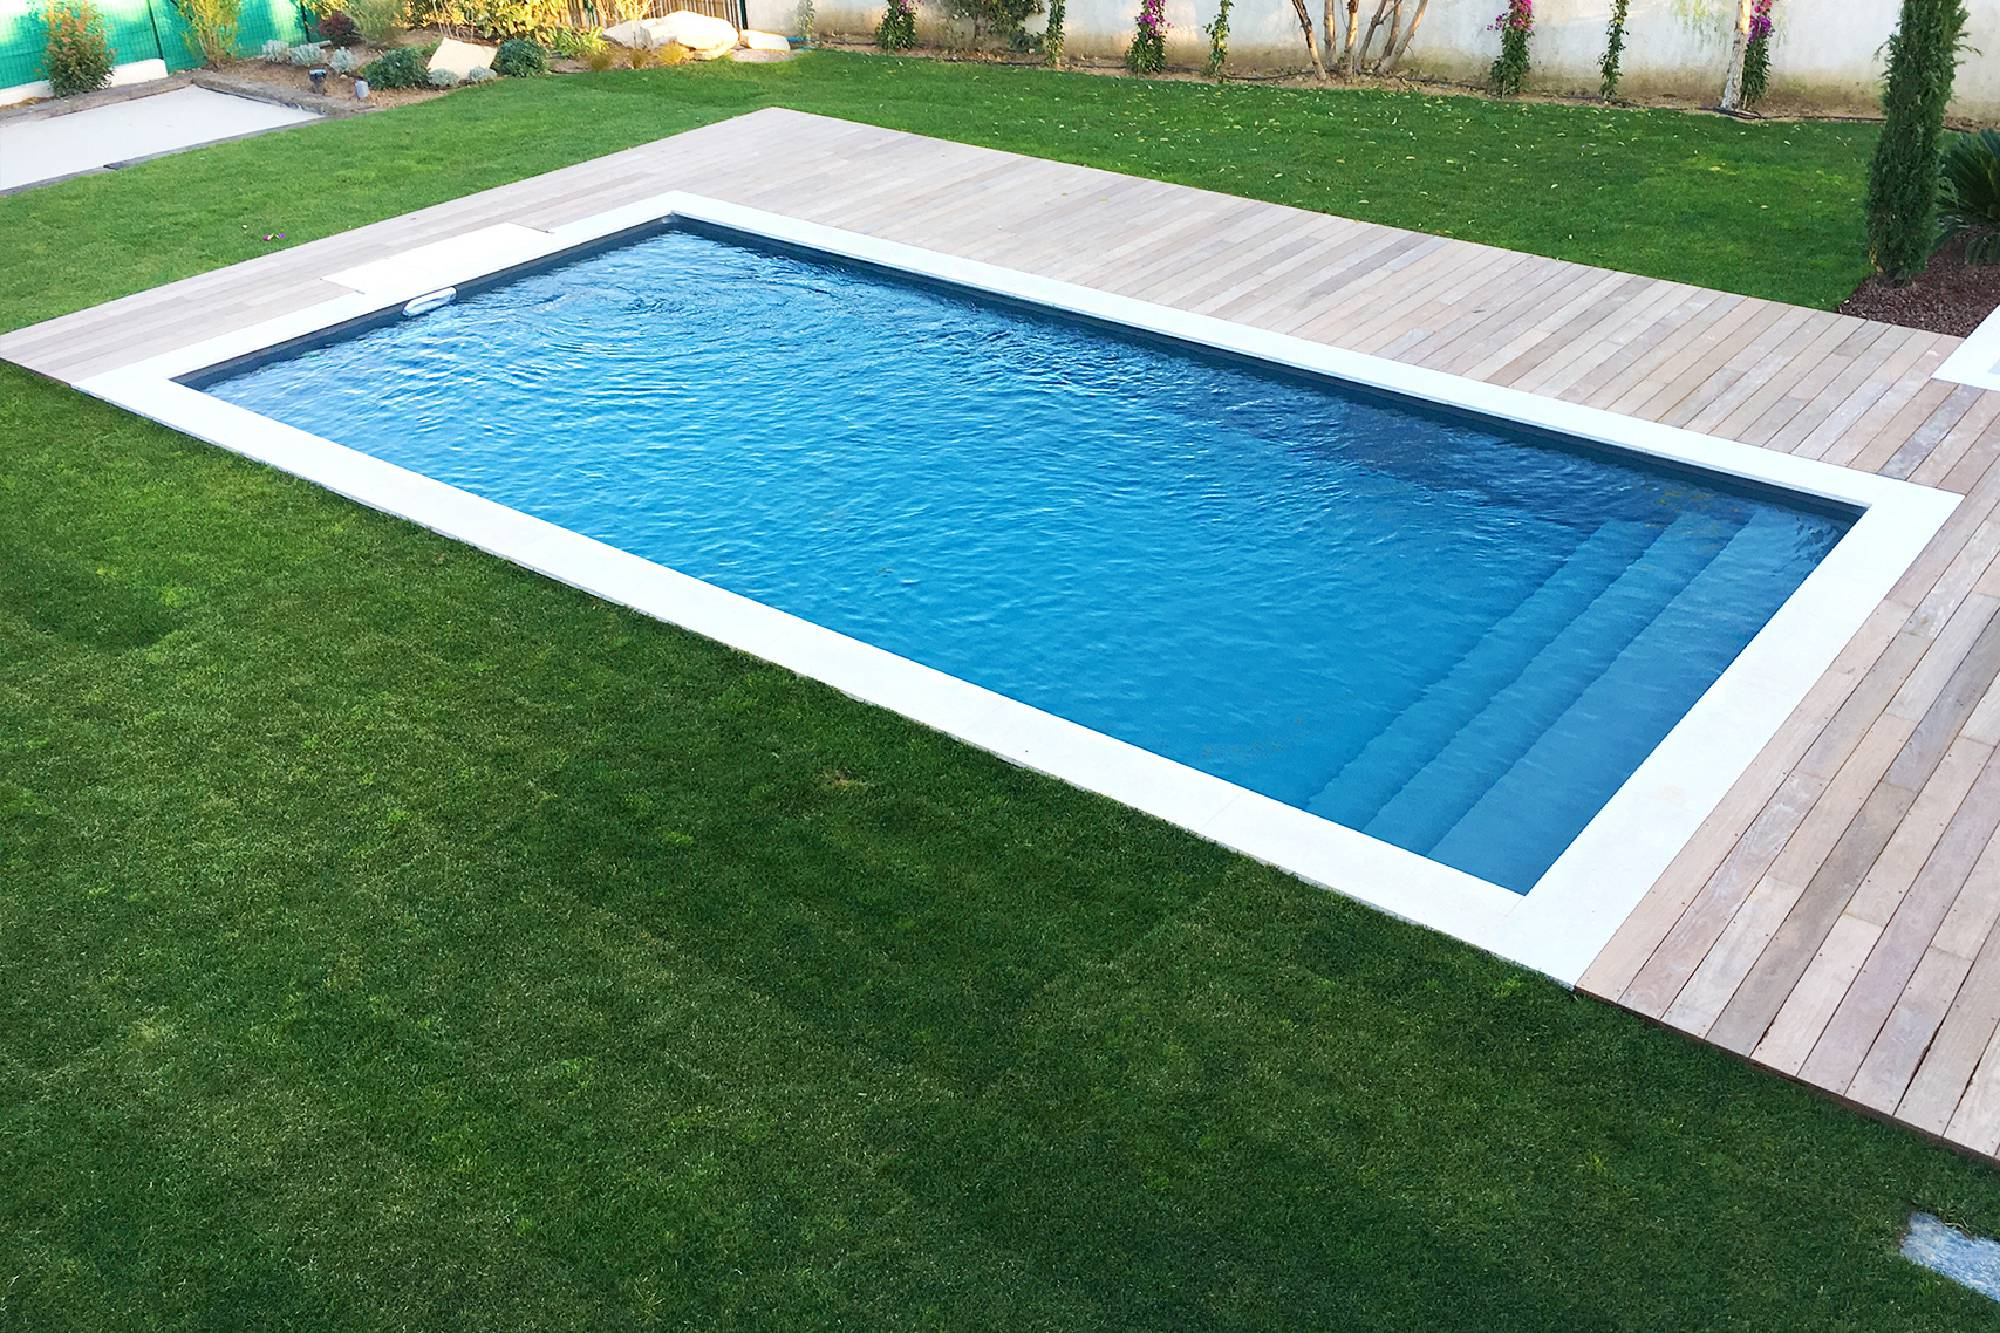 Abri piscine desjoyaux abri piscine desjoyaux with abri for Piscine desjoyaux